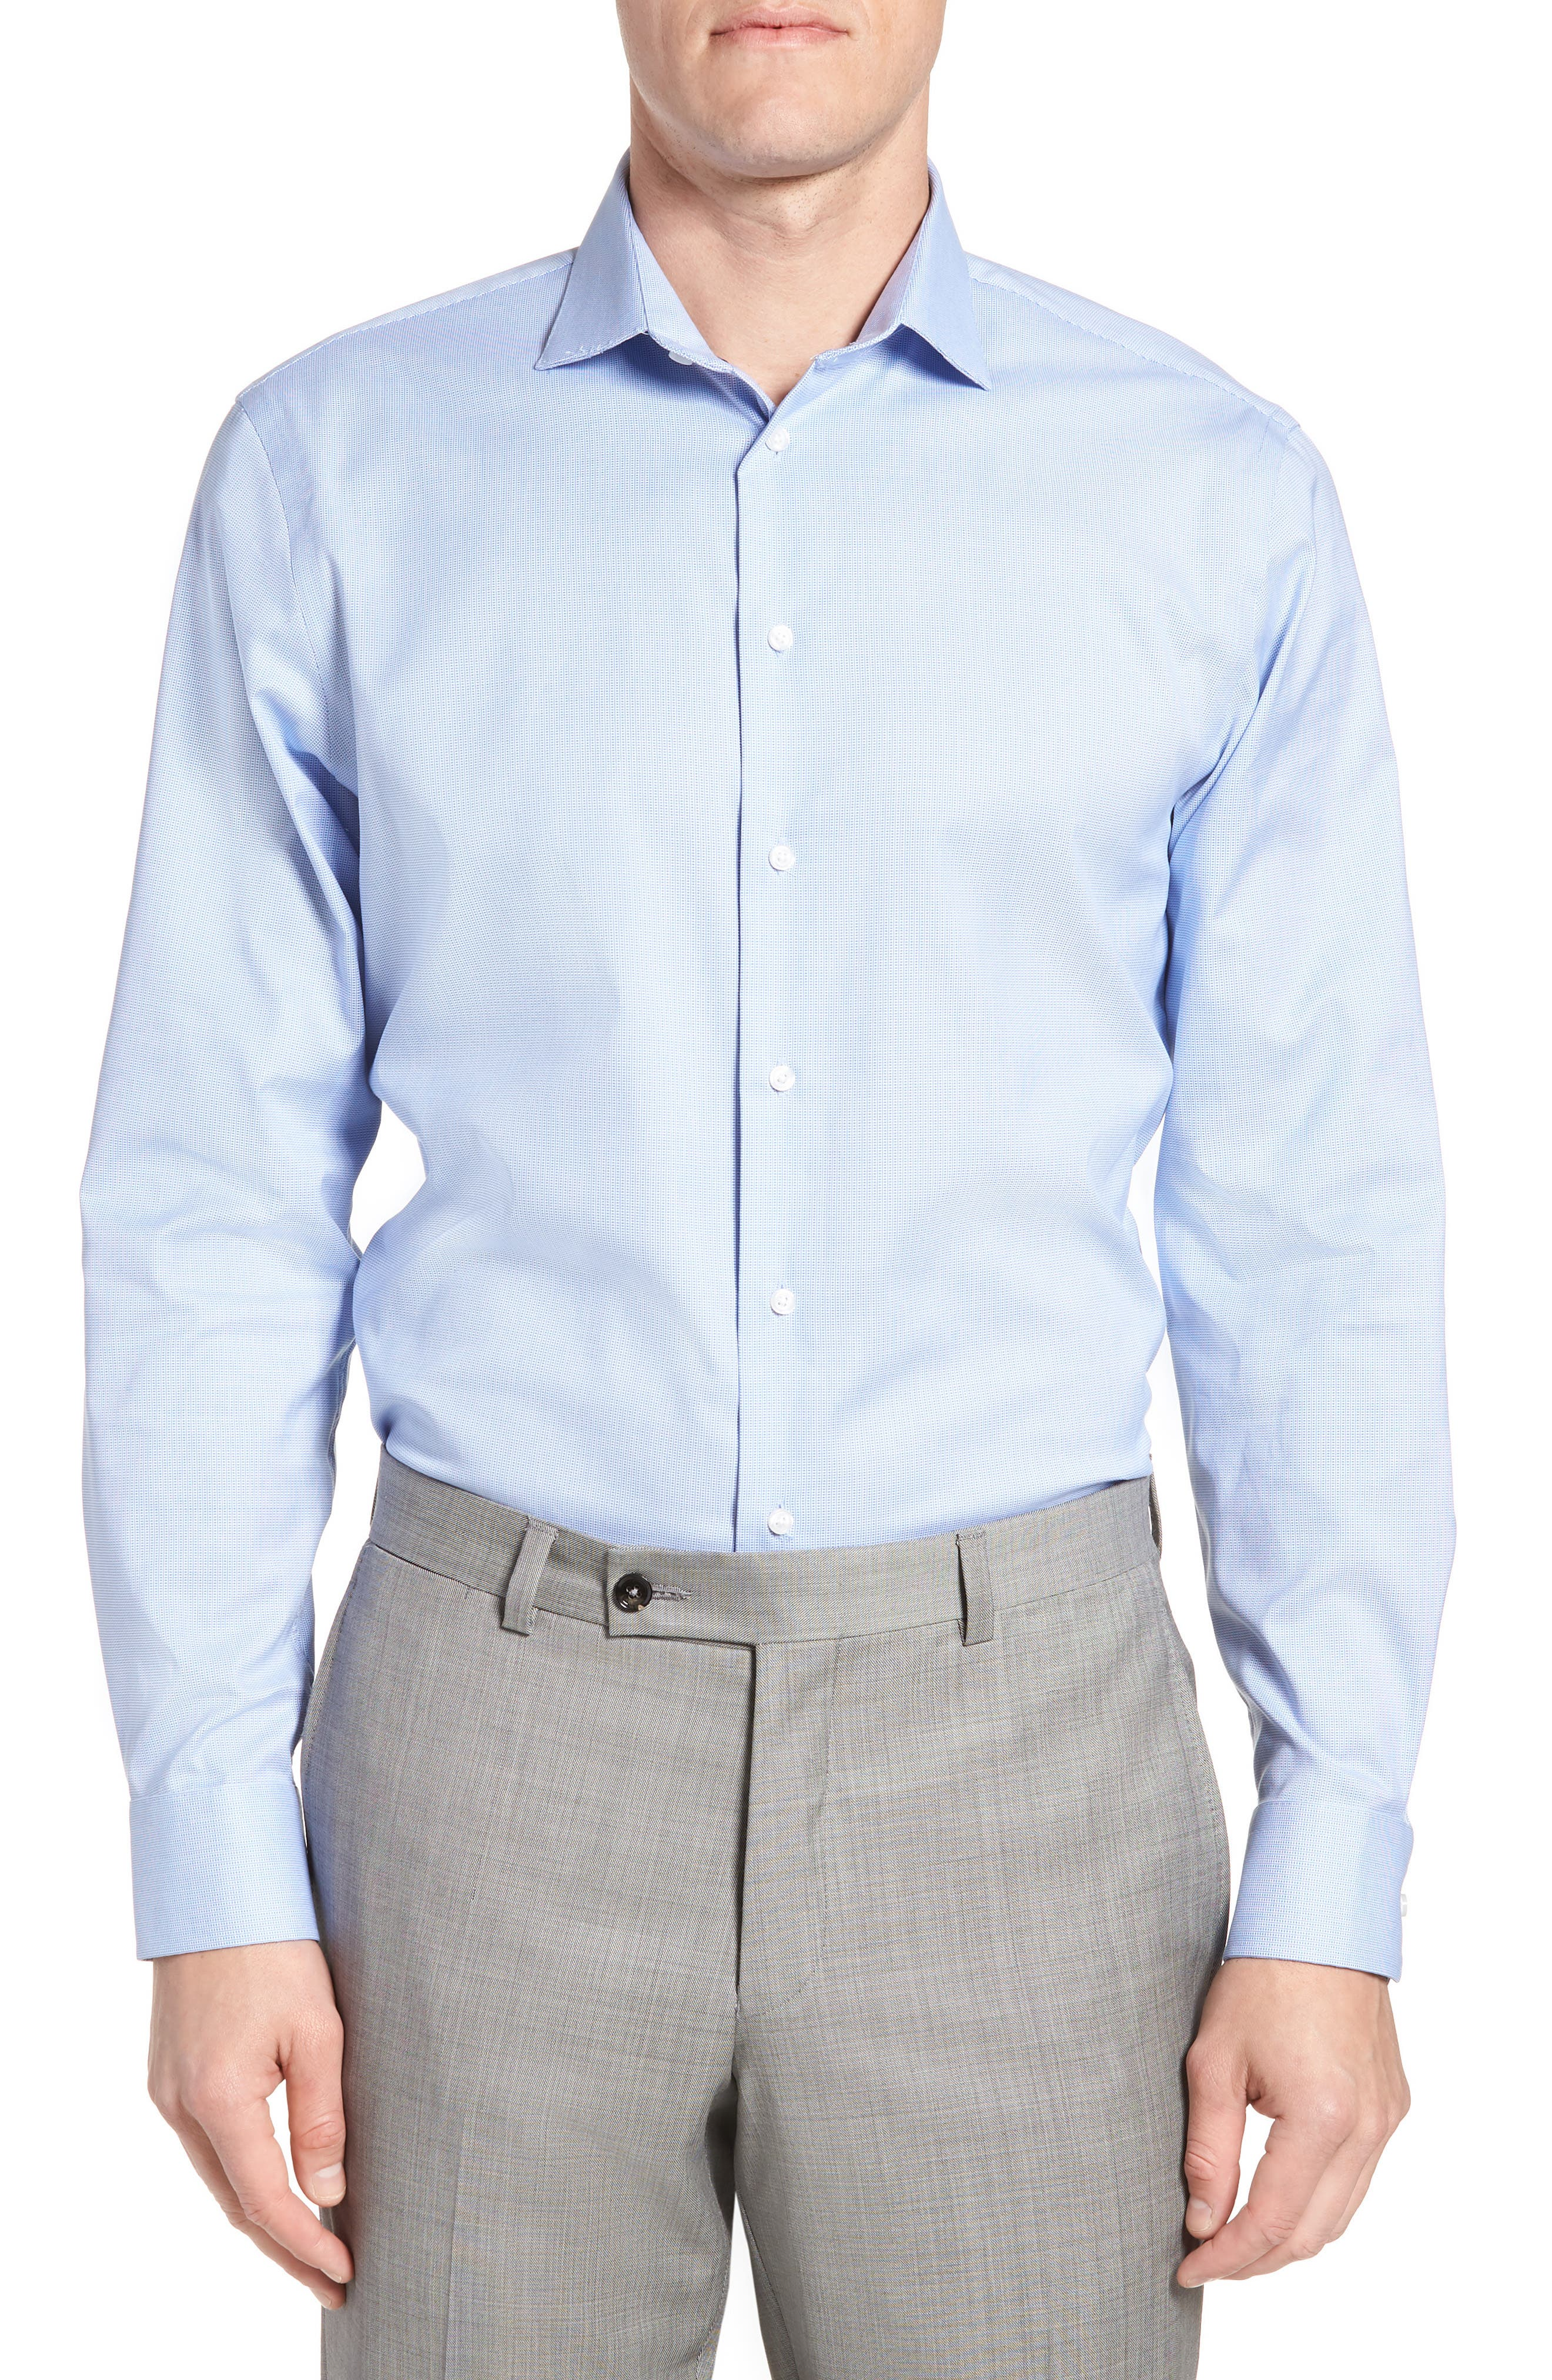 Trim Fit Non-Iron Stretch Dress Shirt,                             Main thumbnail 1, color,                             450